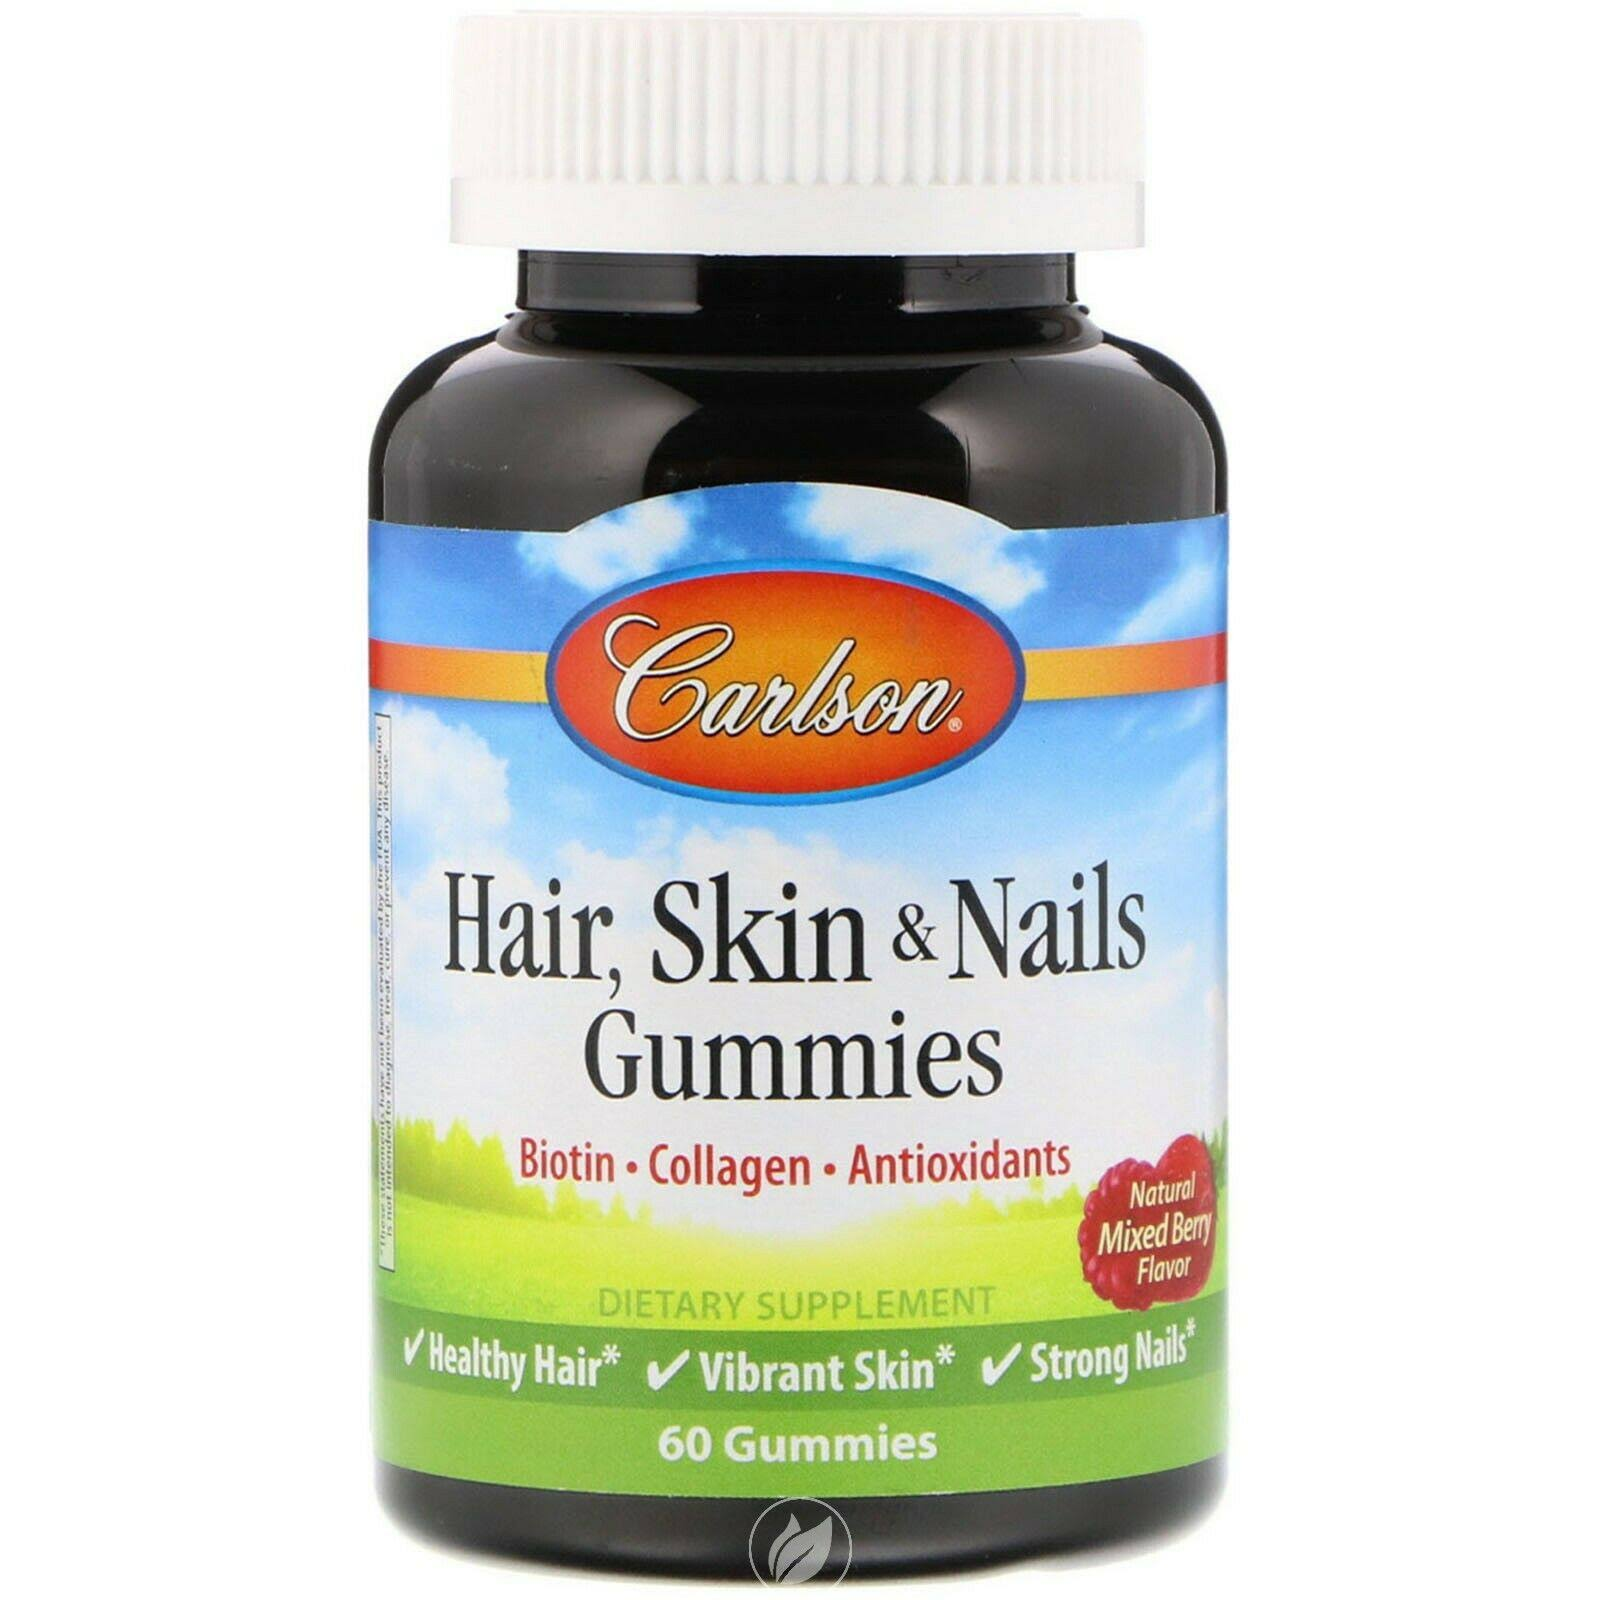 Carlson Hair, Skin & Nails Gummies 60 Gummies